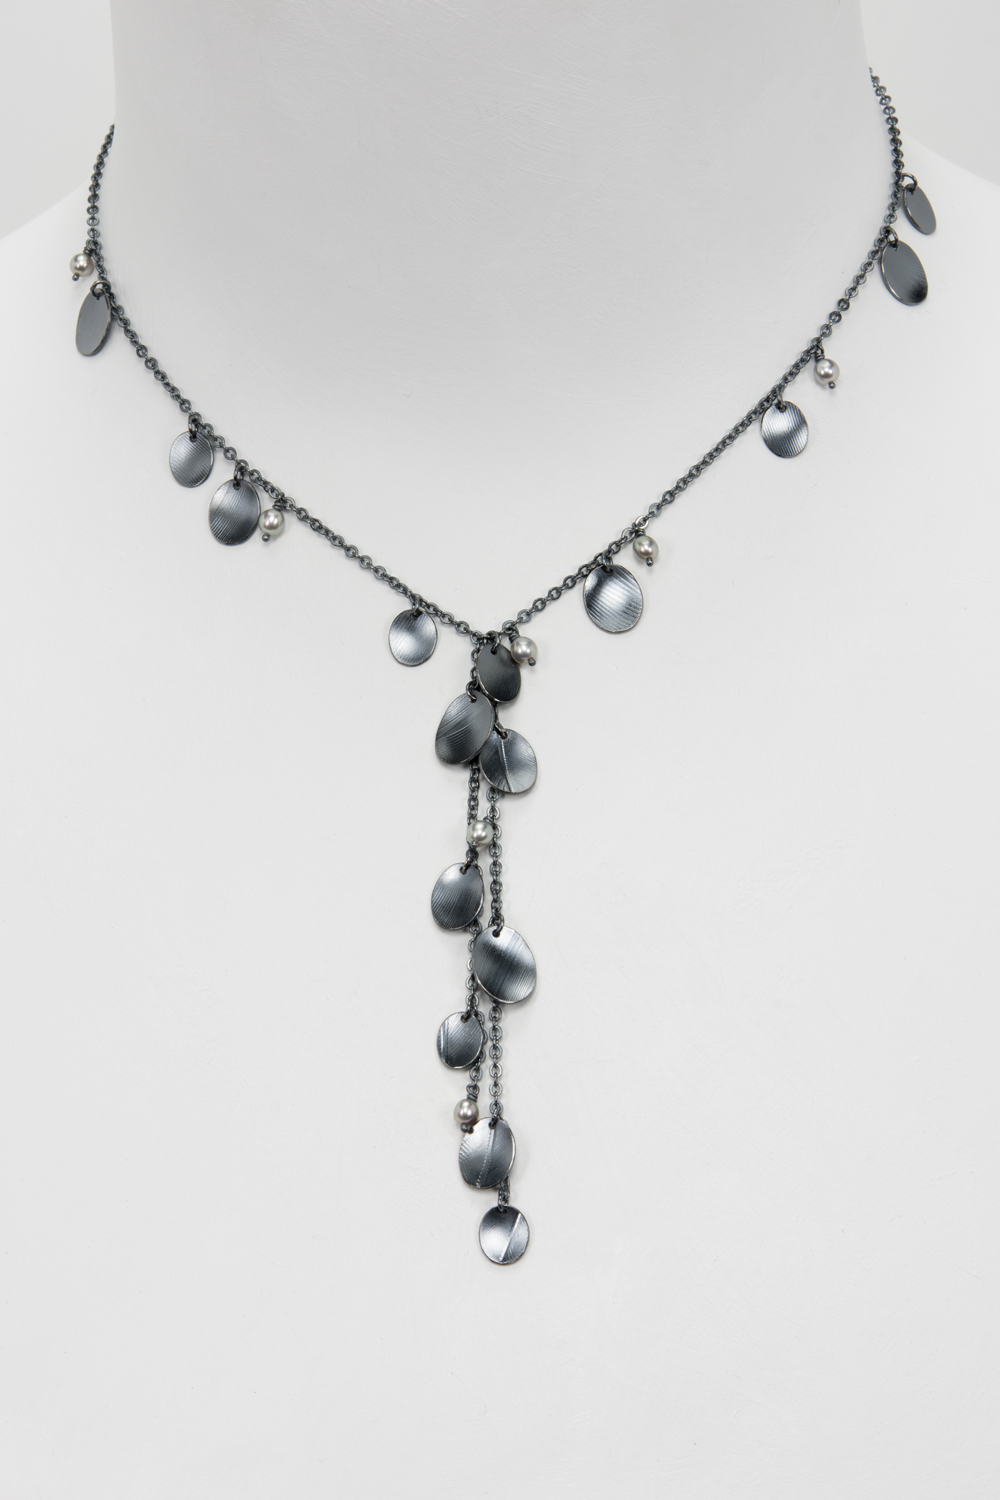 short Y feather necklace - oxidized sterling and pearls - 680.00